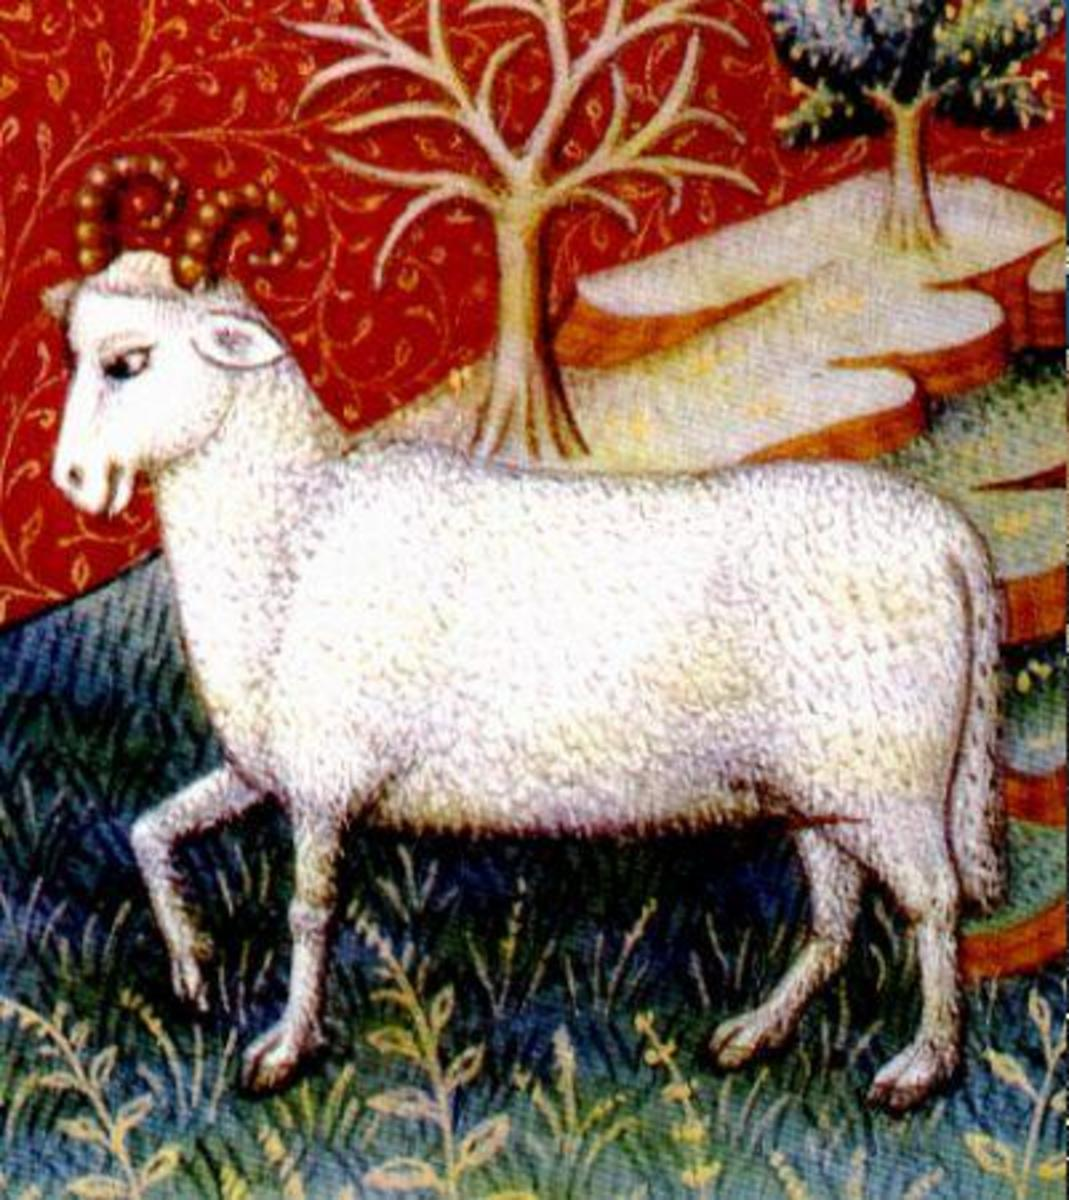 Aries is the first sign of the Zodiac.  The Ram is this Fire sign's symbol, and is ruled by the Astrological planet Mars.